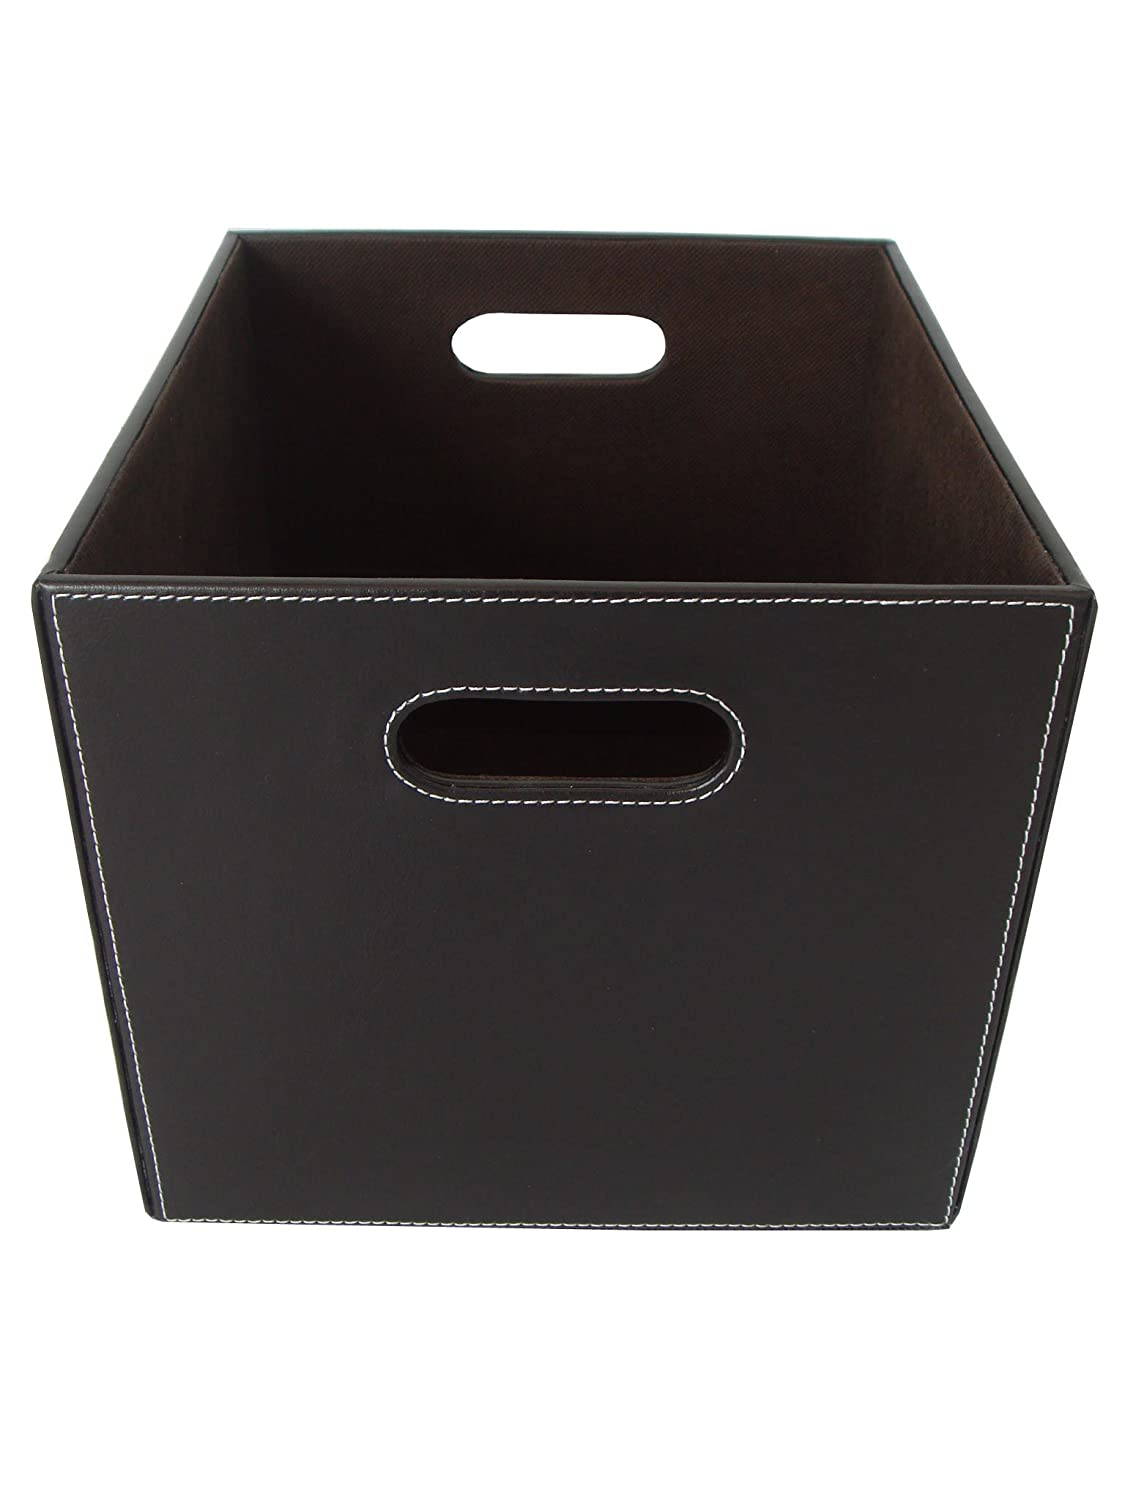 Organize It All Small Faux Leather Basket (Dark Brown) 31501W